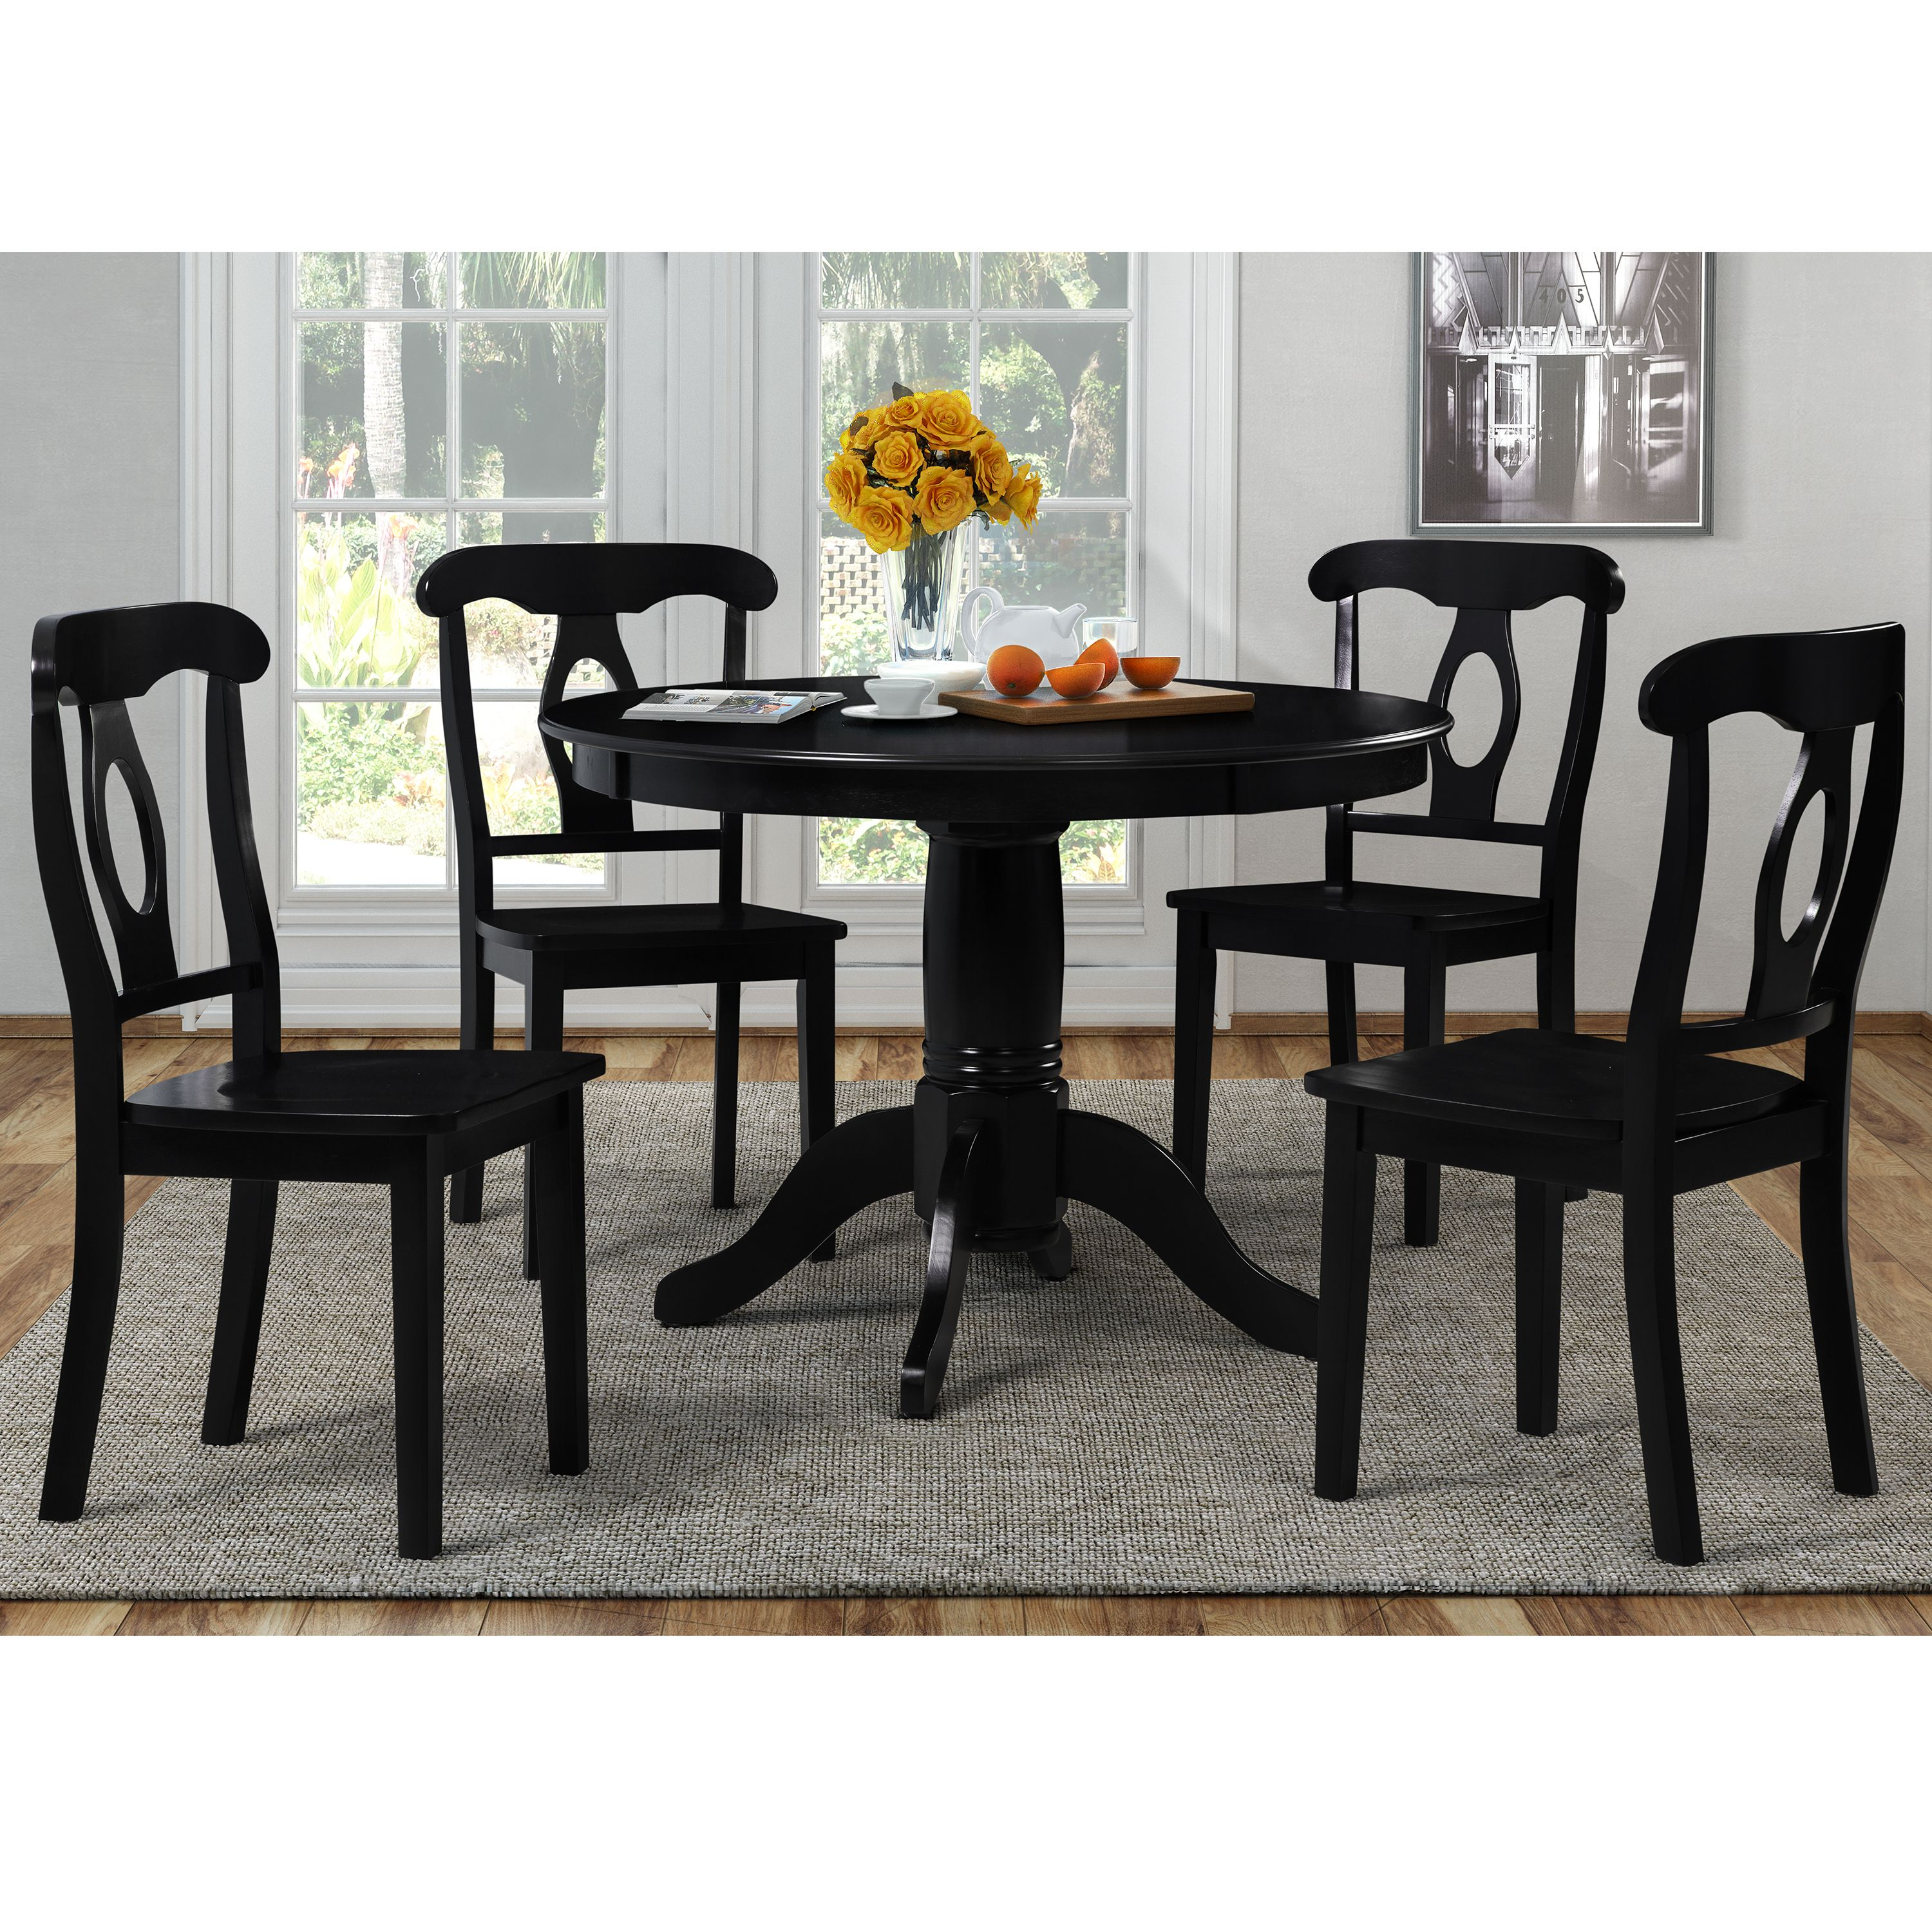 Dorel Living Aubrey 5-Piece Traditional Height Pedestal Dining Set, Multiple Colors